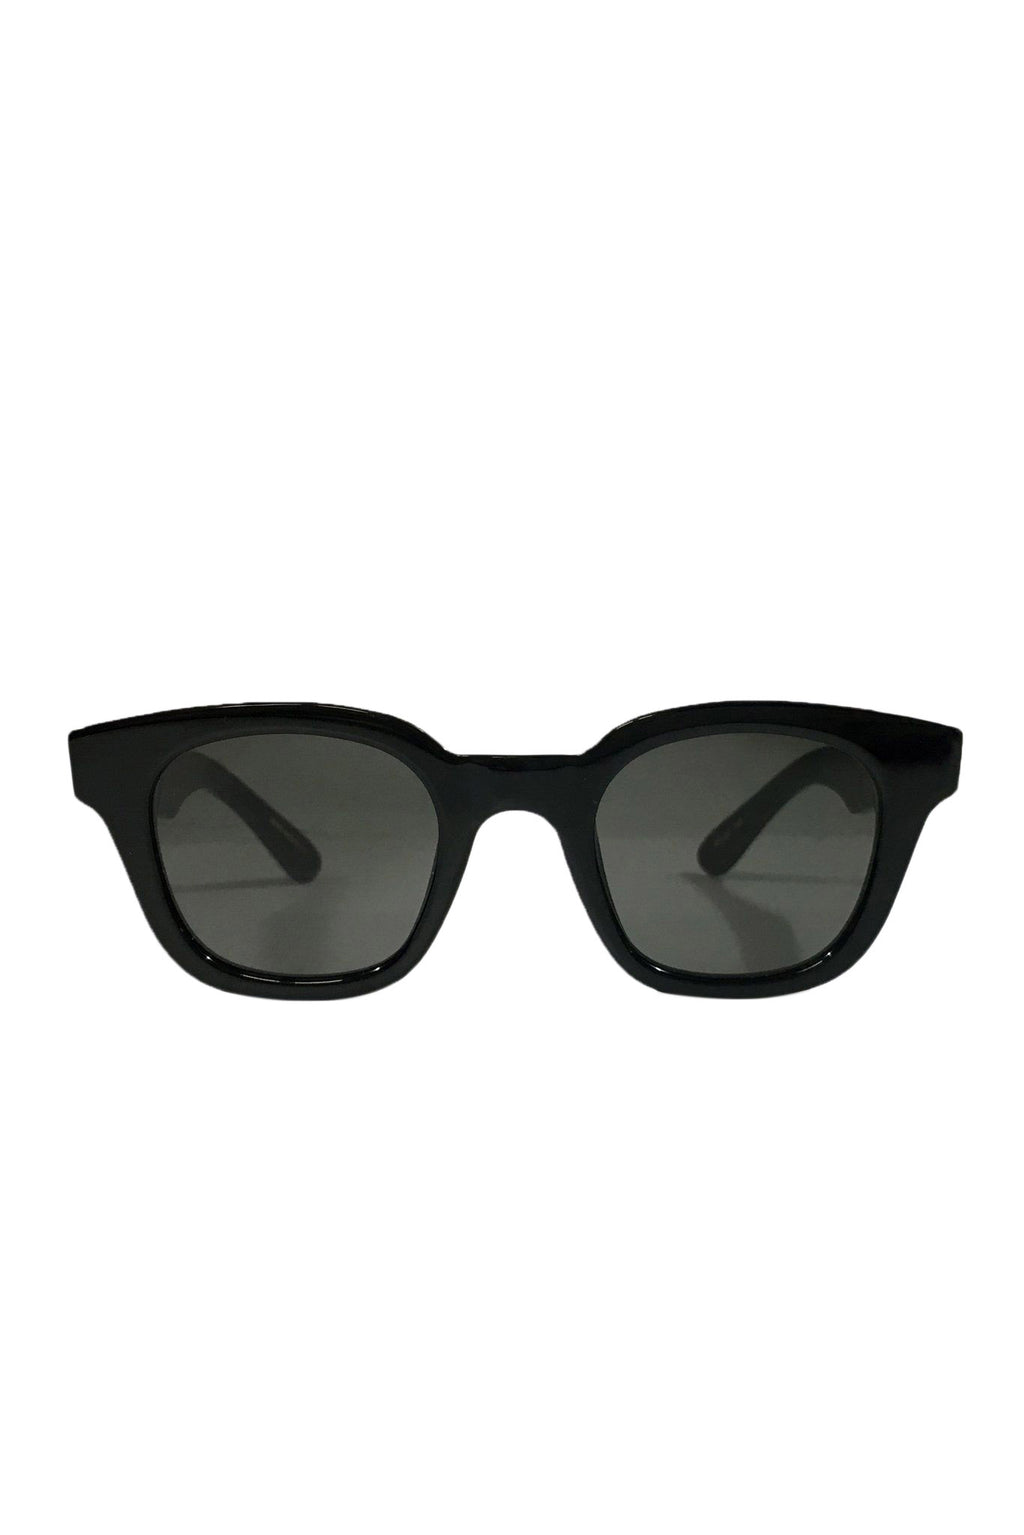 Black Acetate Warsaw Sunglasses